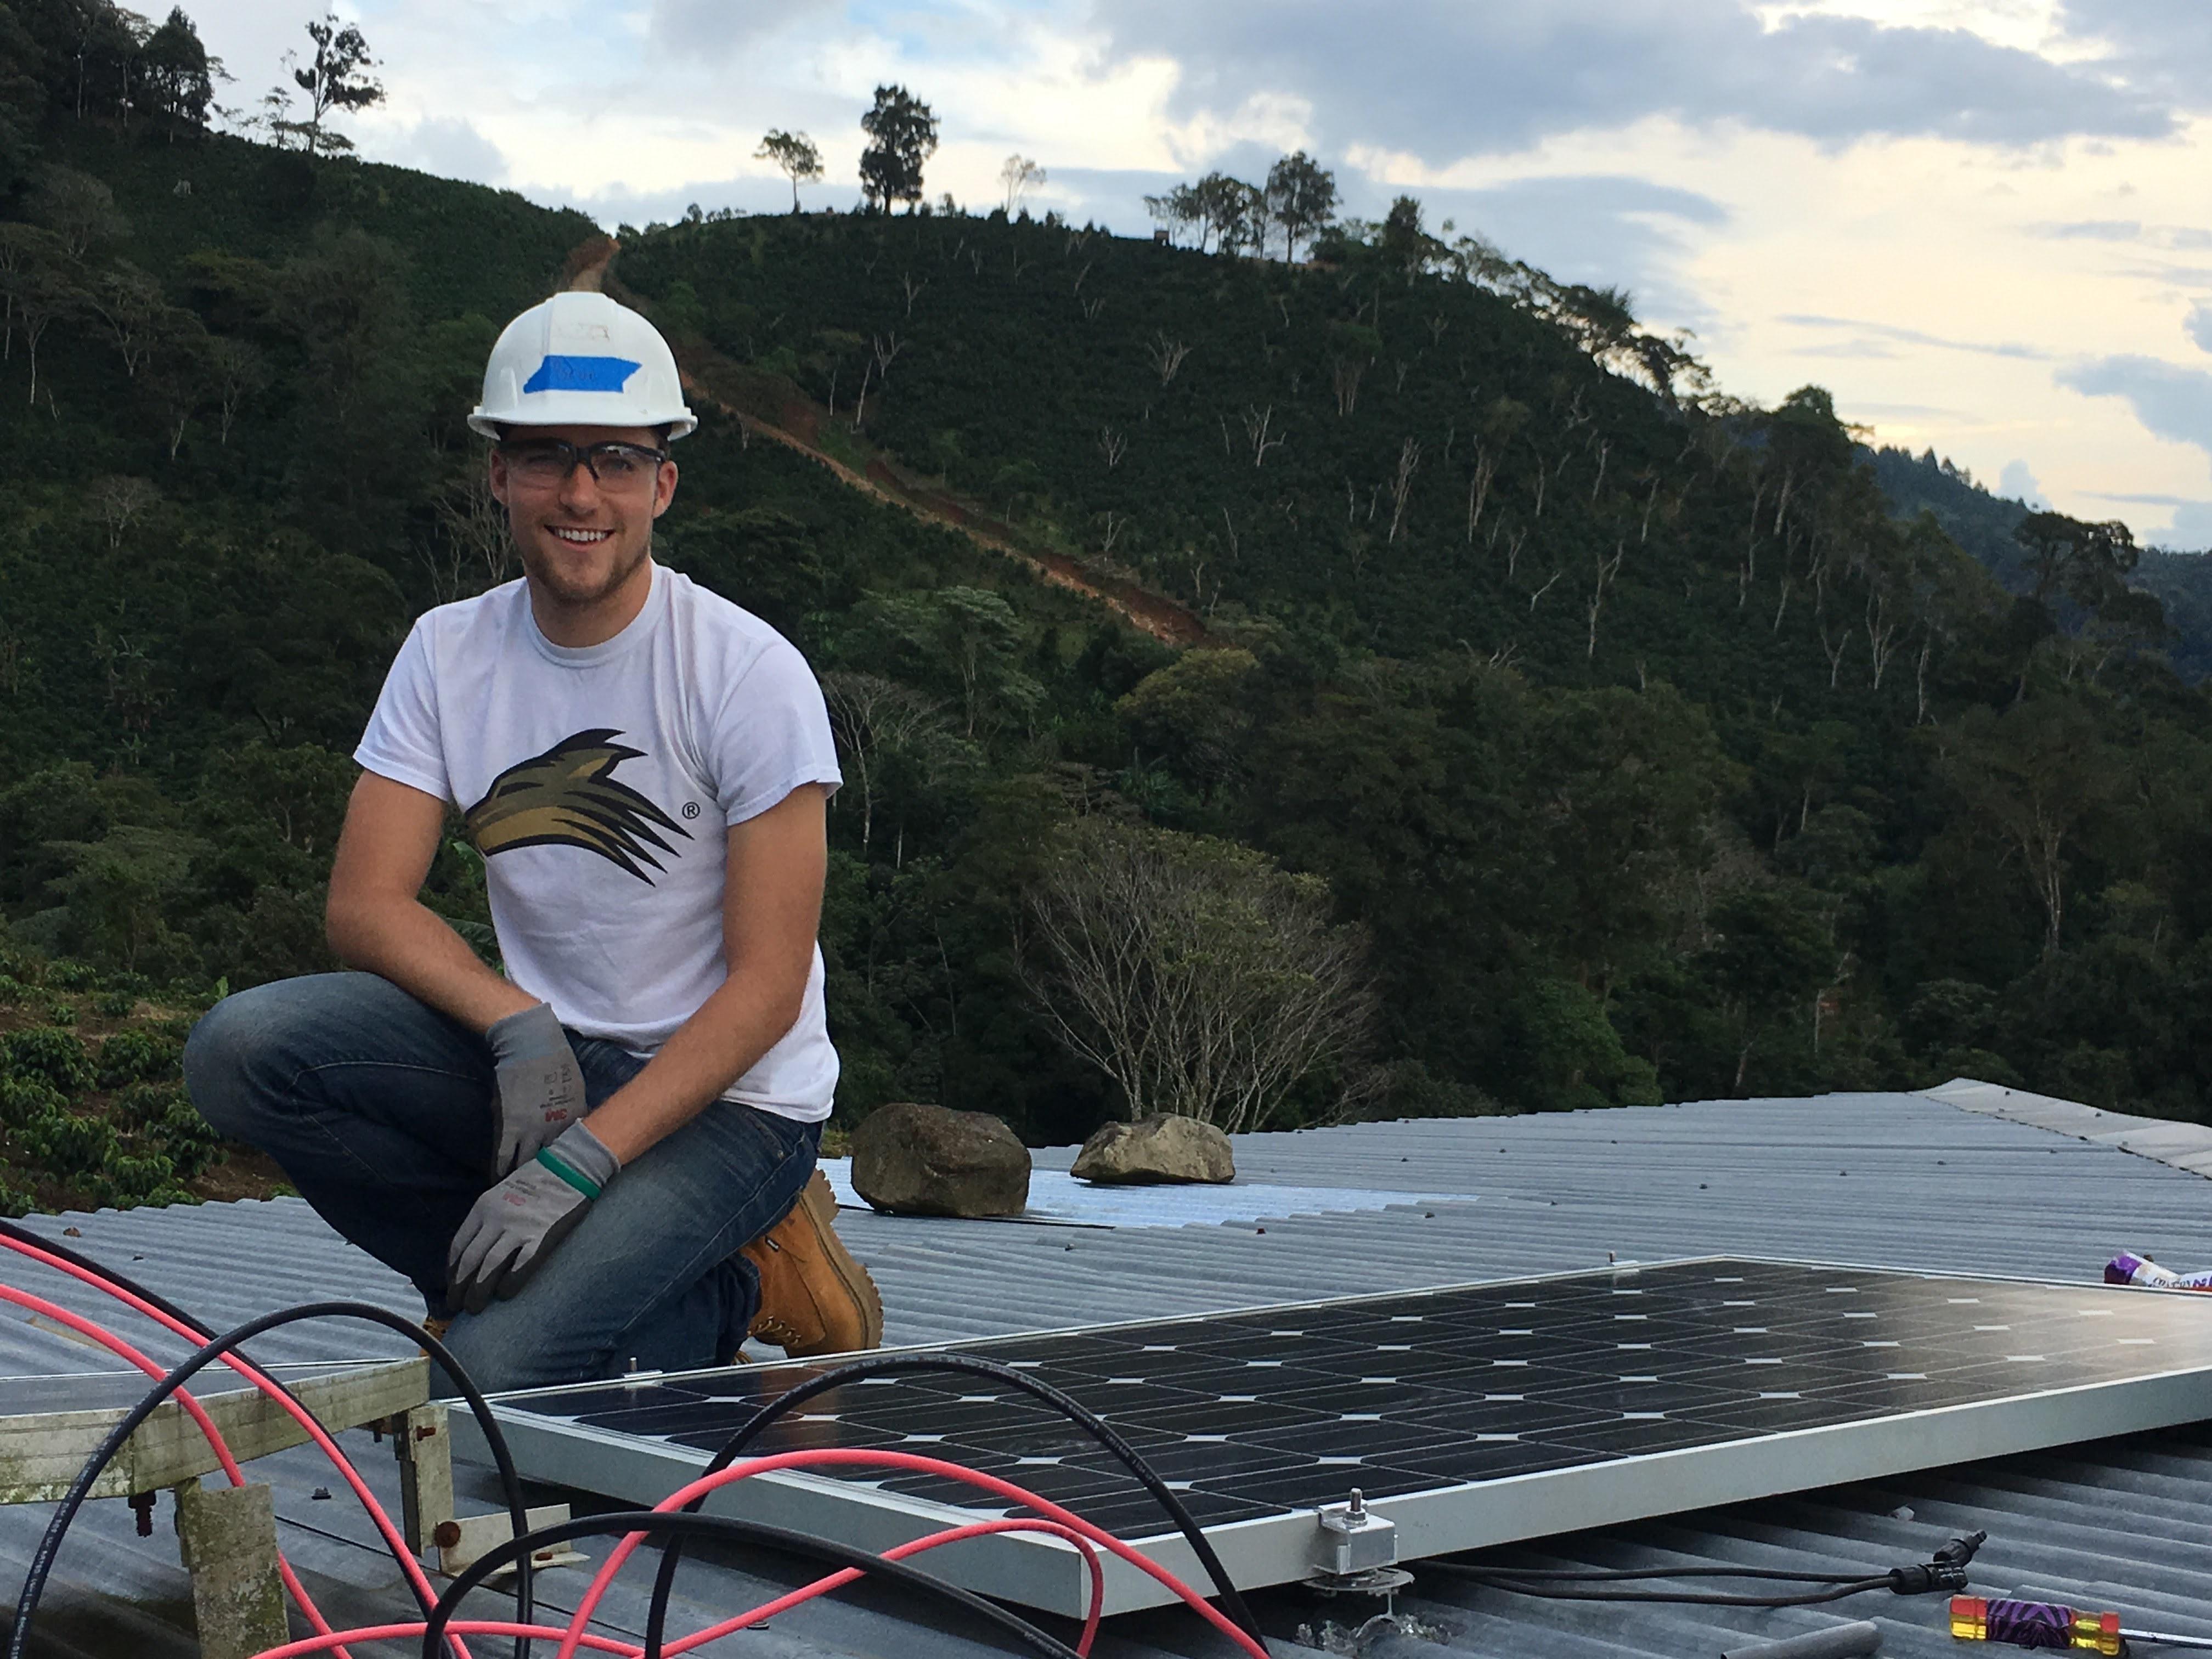 Brock installing home solar systems in Nicaragua.